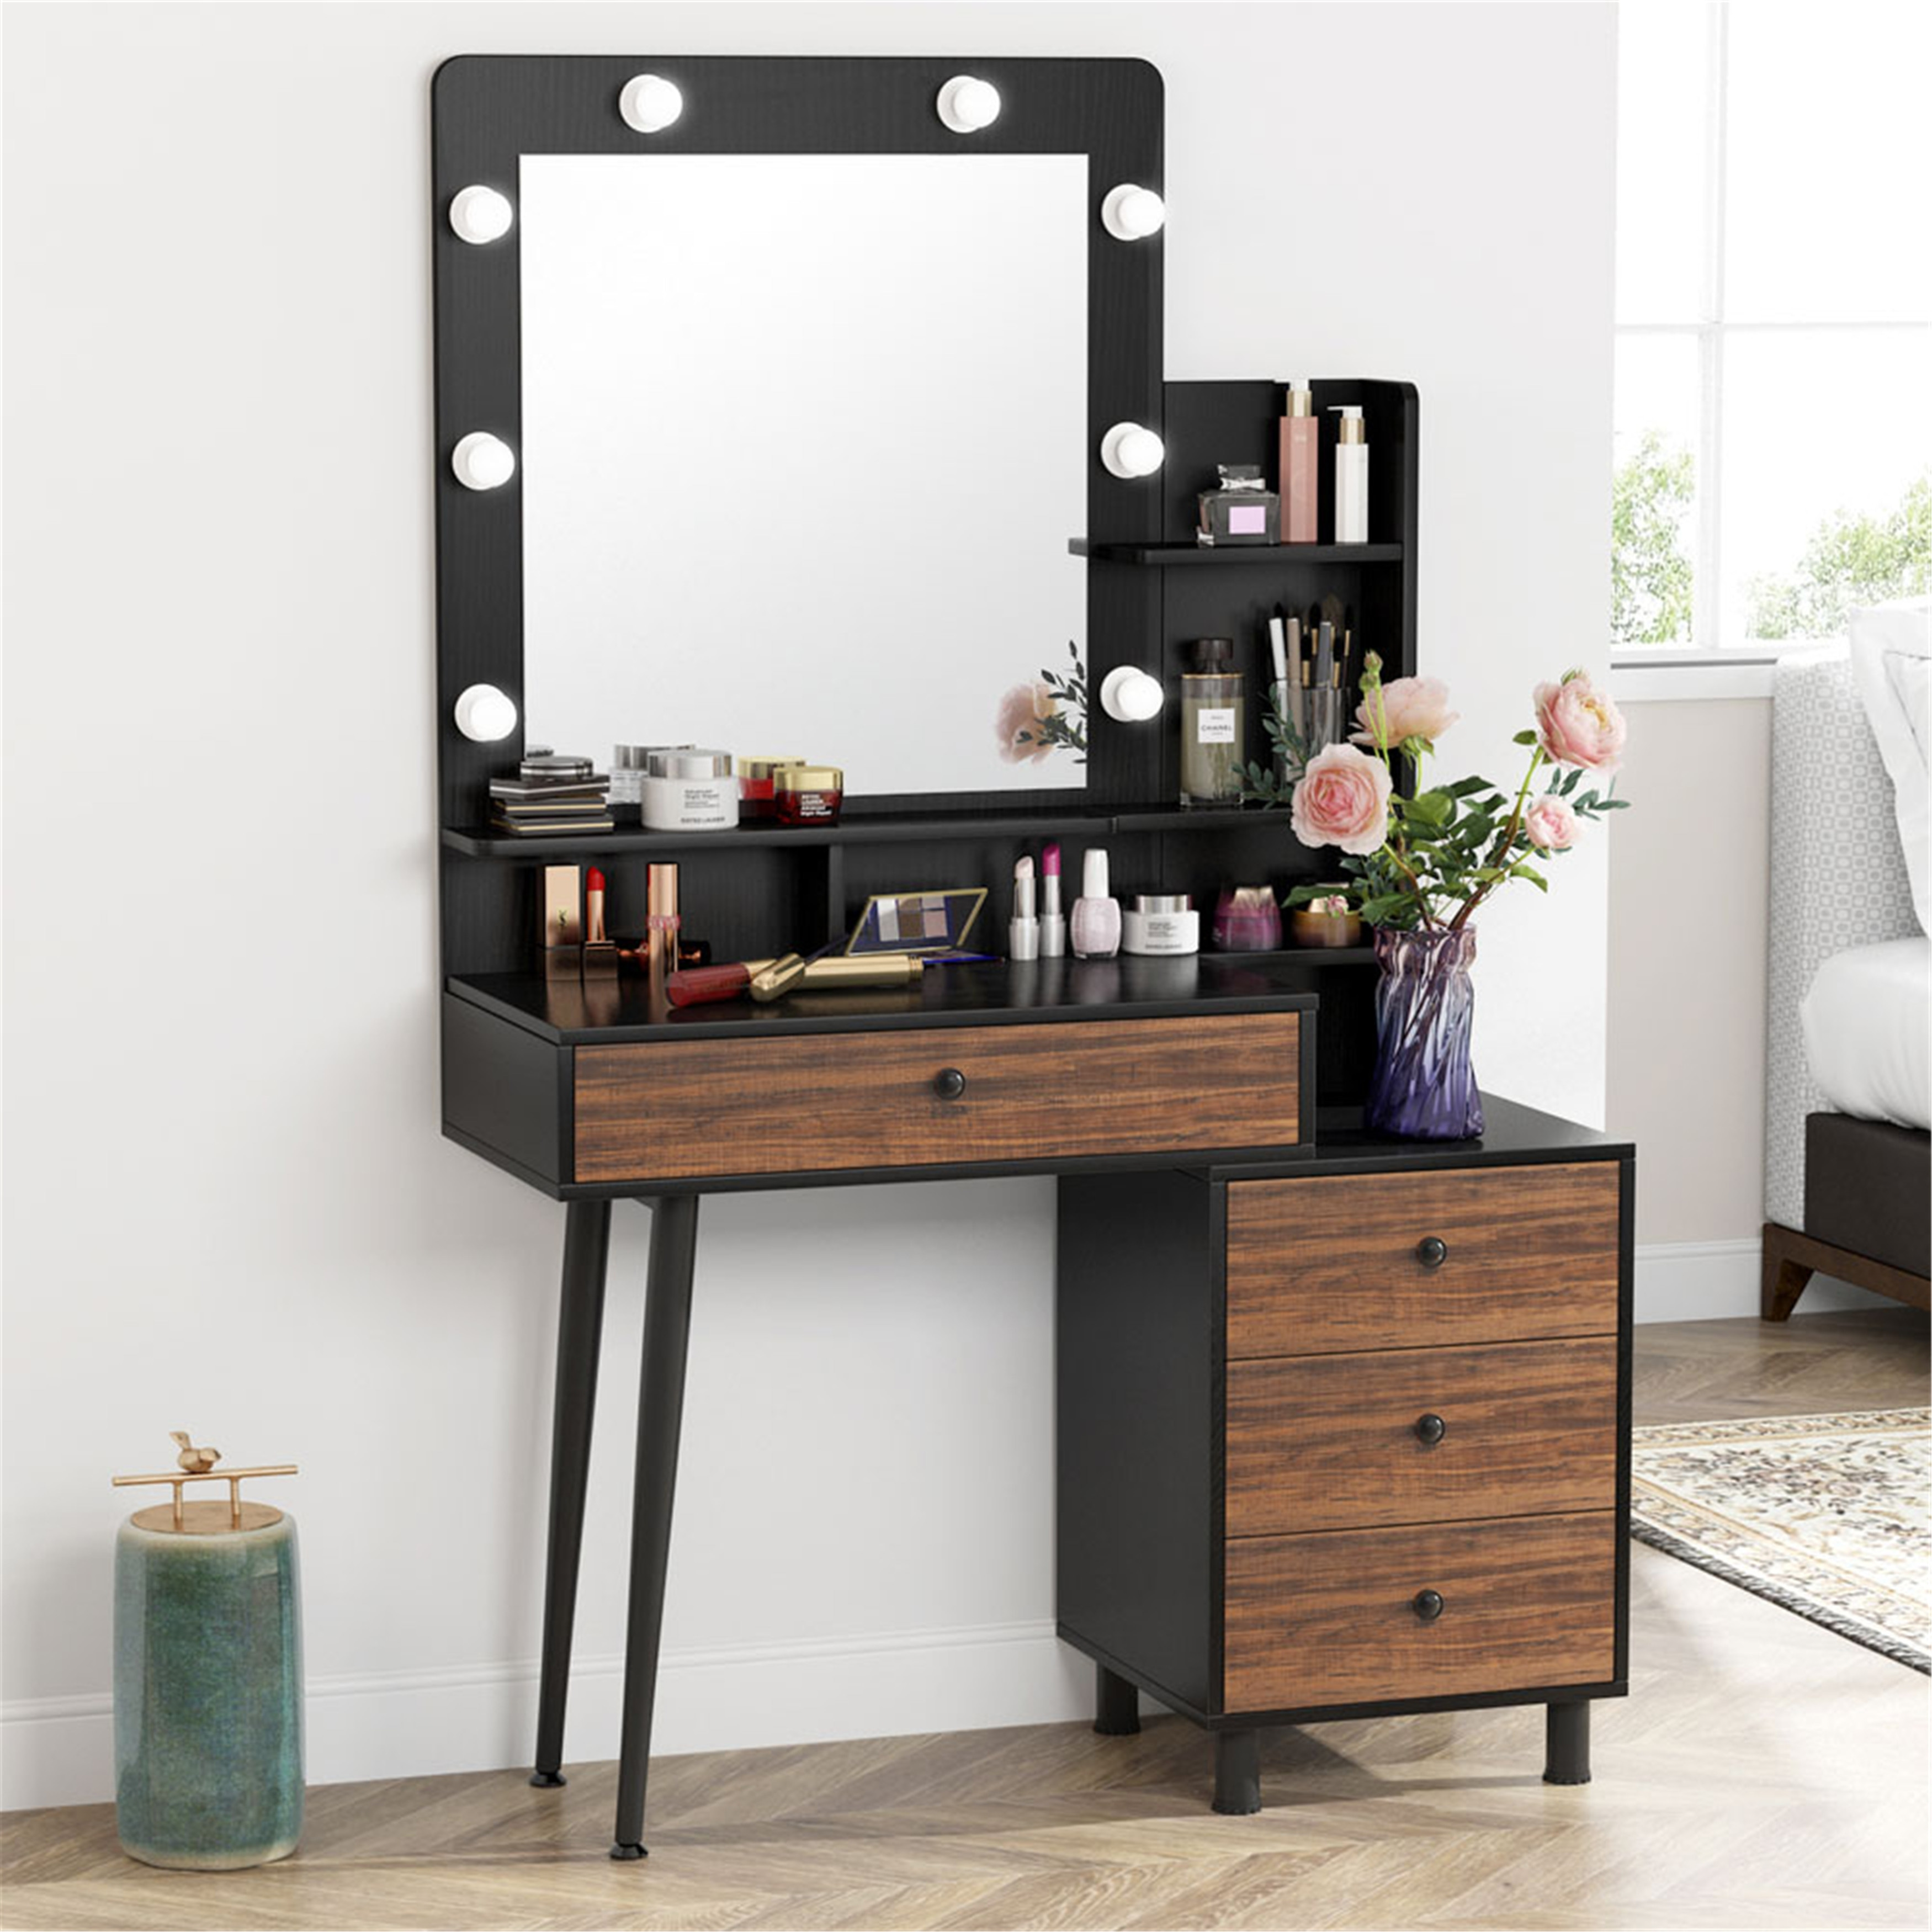 Makeup Vanity Table With Lighted Mirror And 3 Drawer Chest Black Brown Overstock 31865511